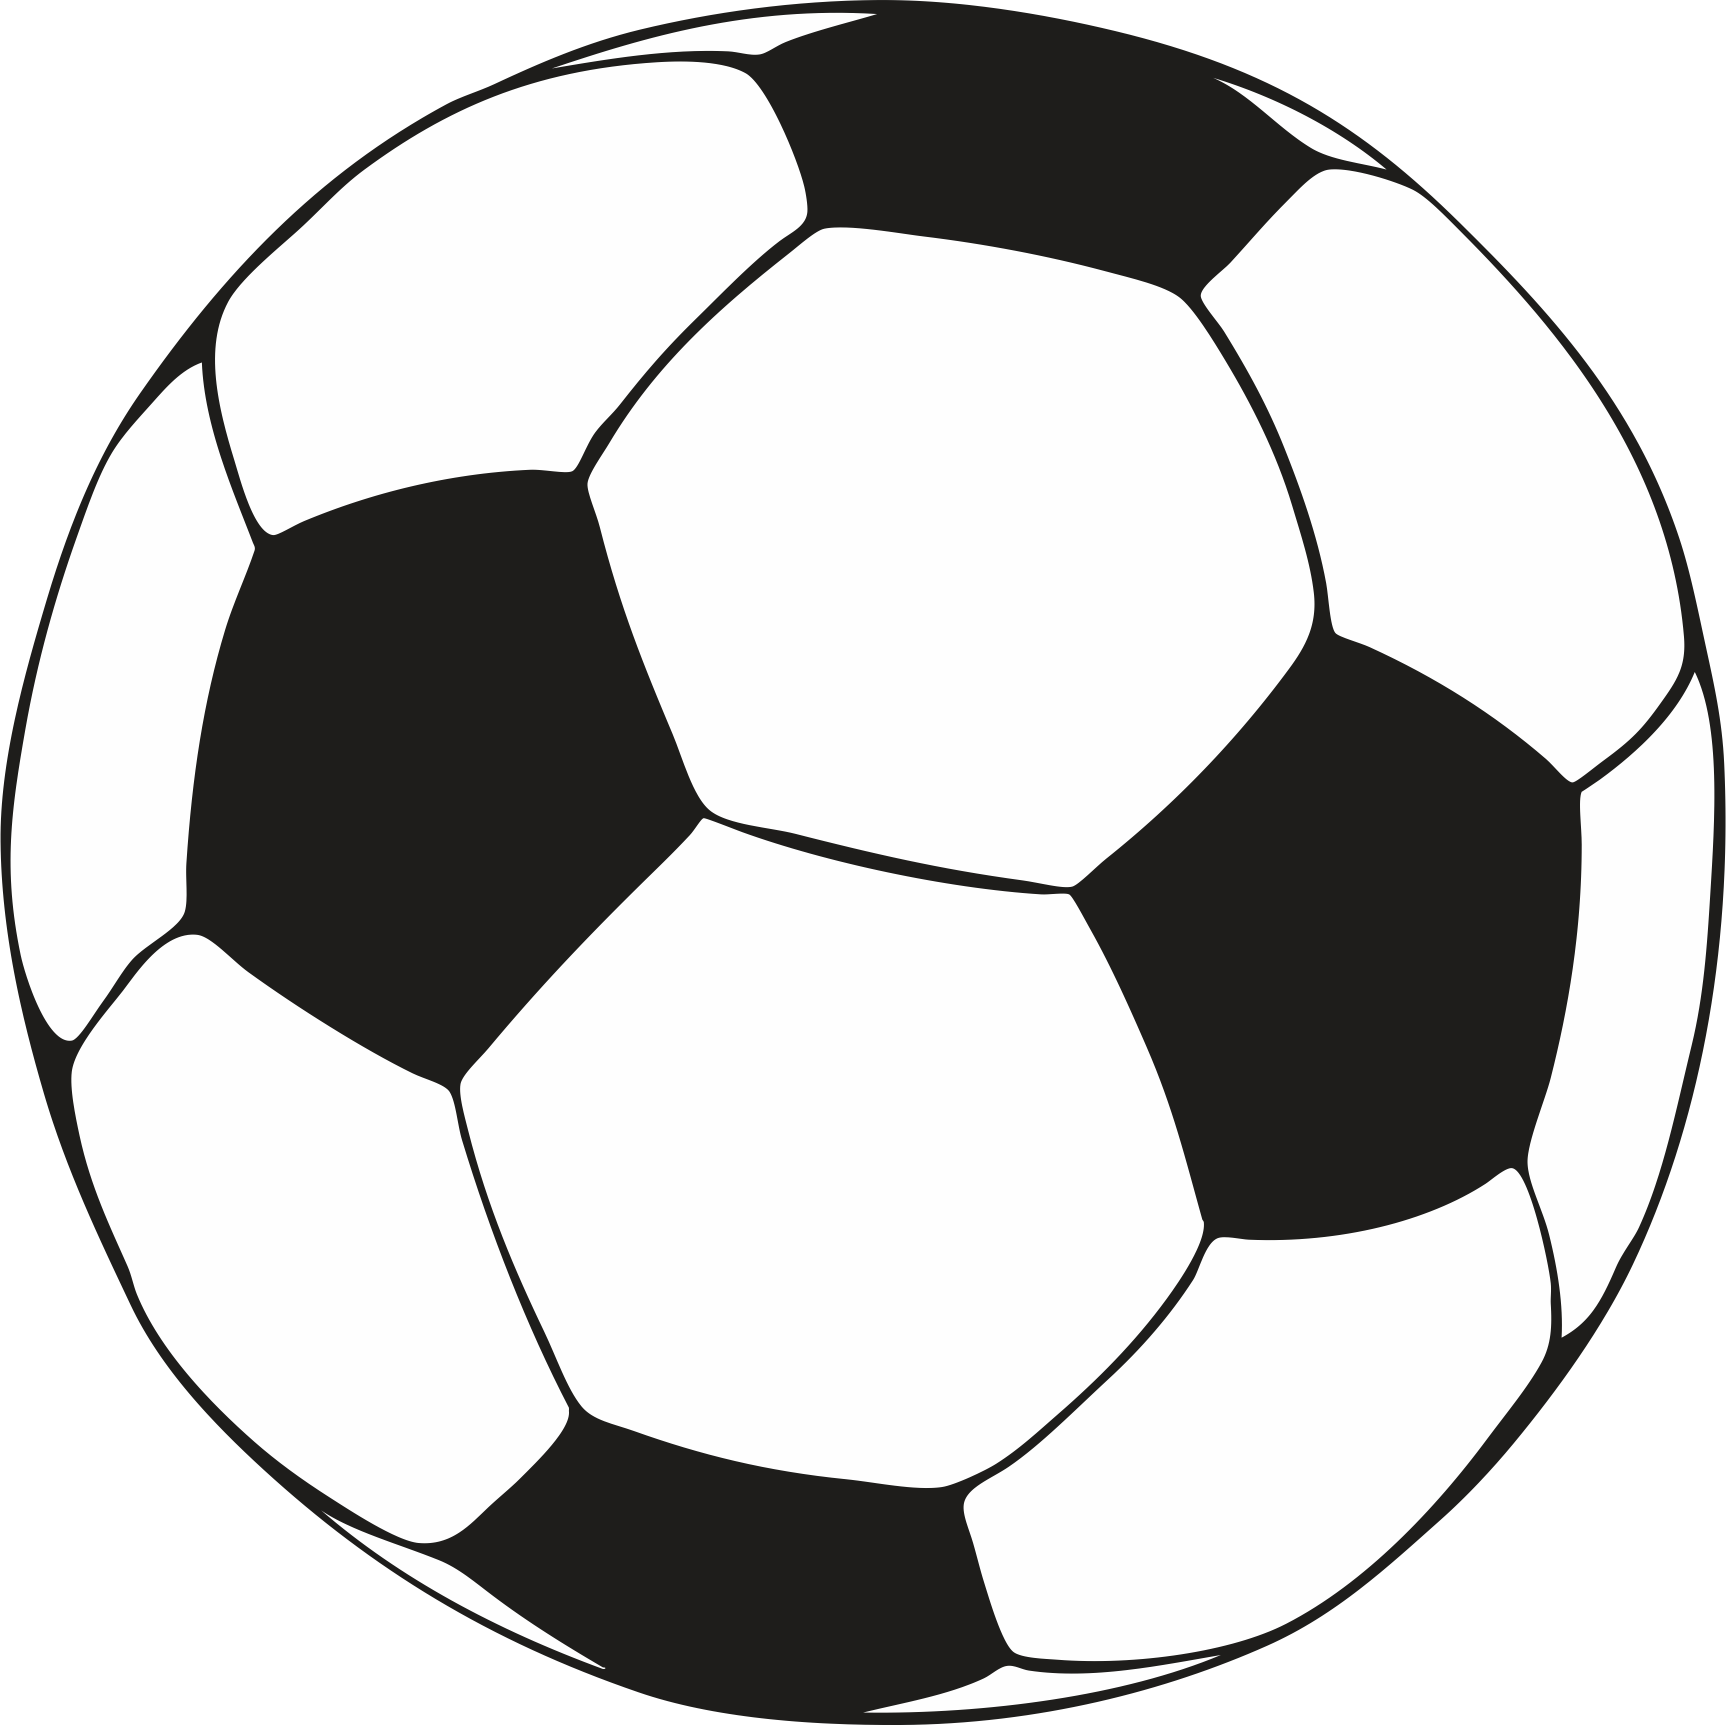 soccer colouring pages free printable football coloring pages sheets for kids sports free printable pages colouring soccer